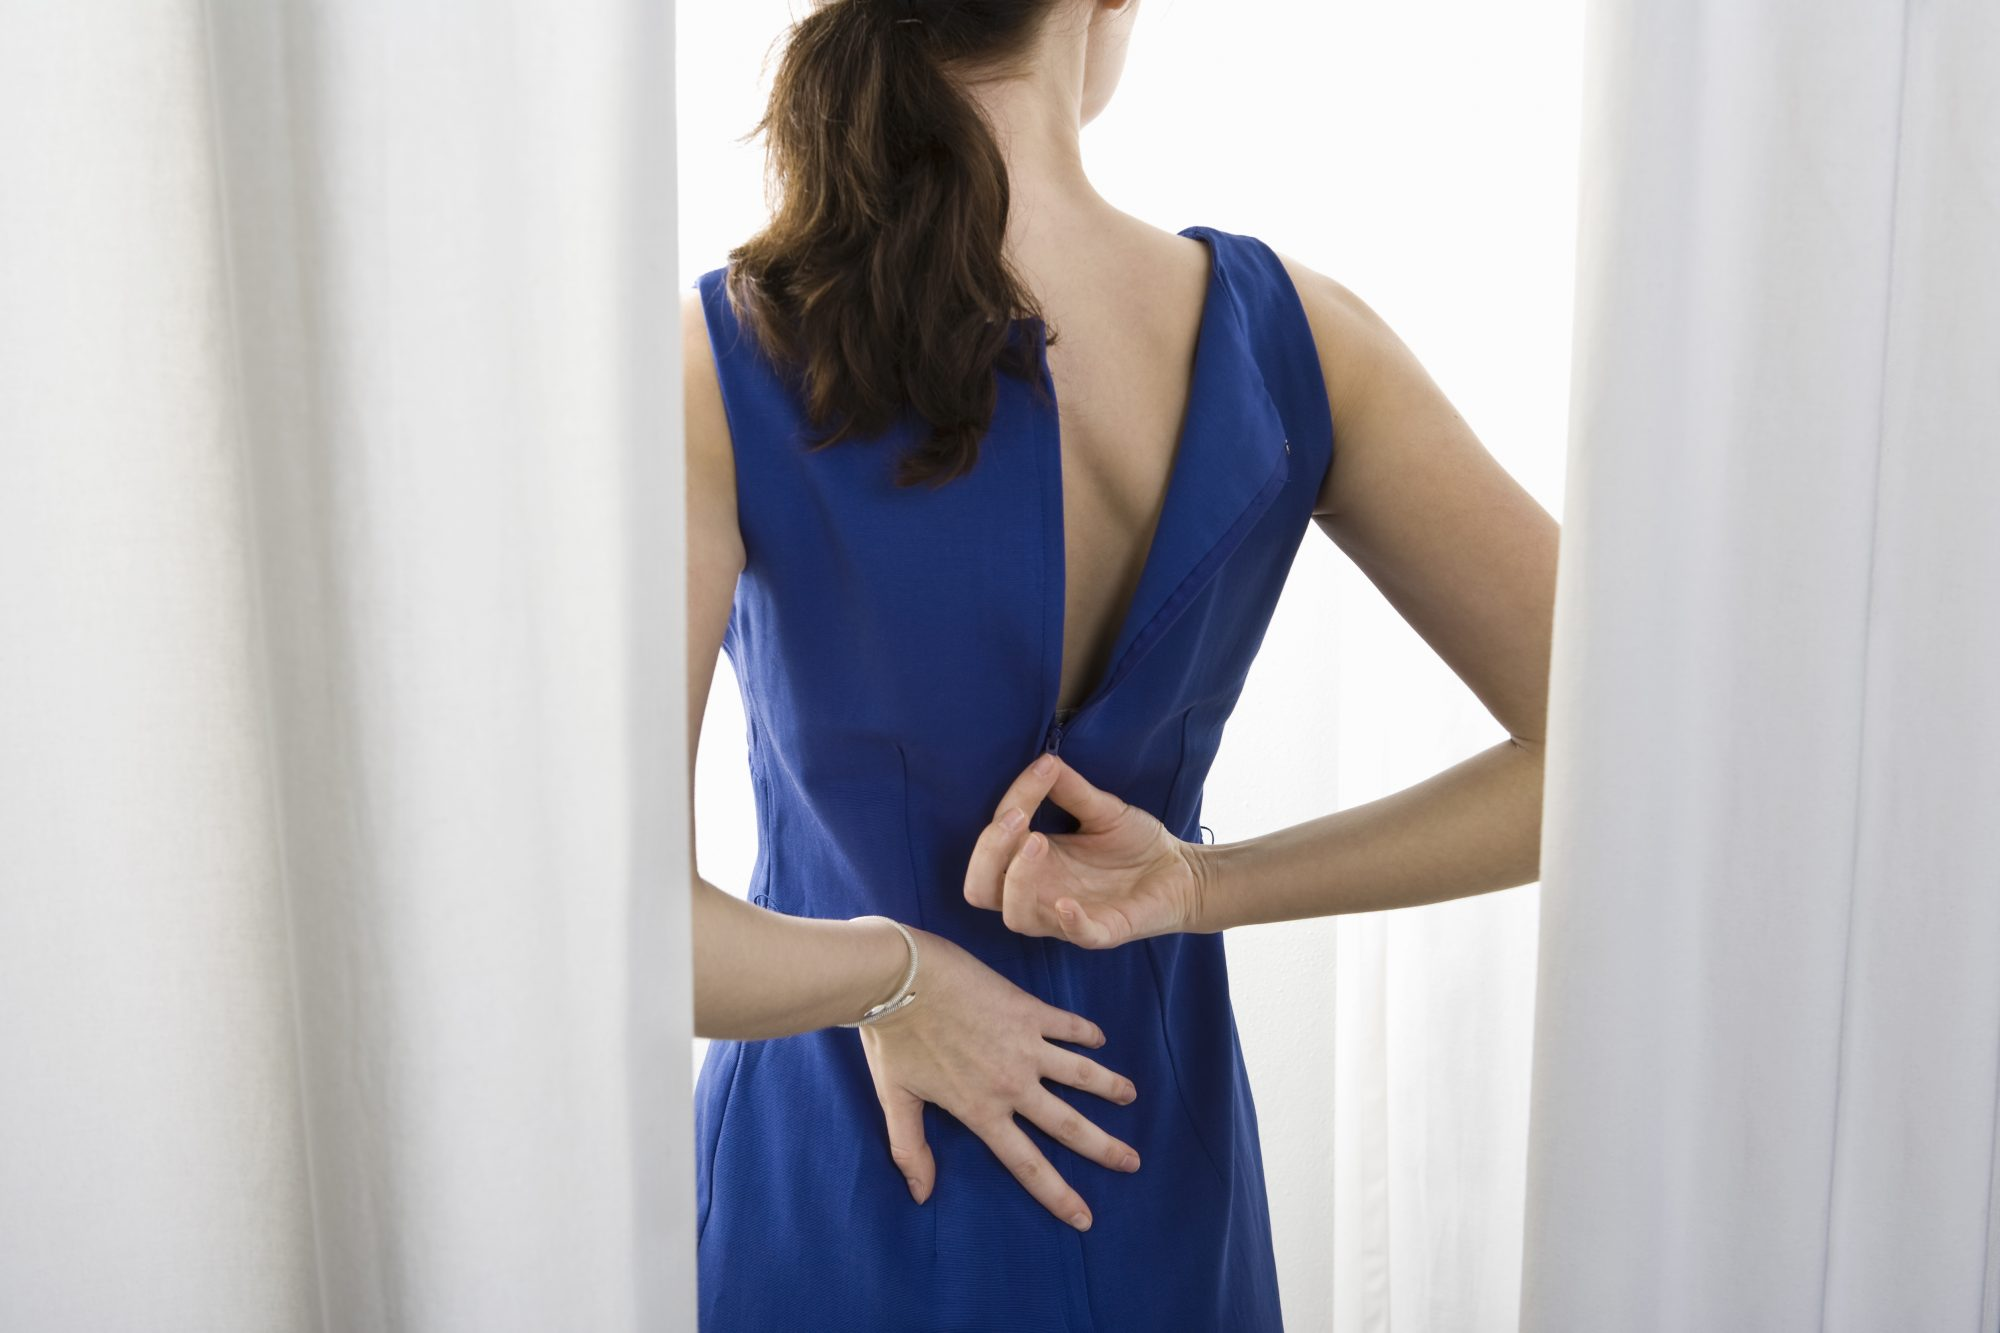 Woman zipping up a blue dress in dressing room